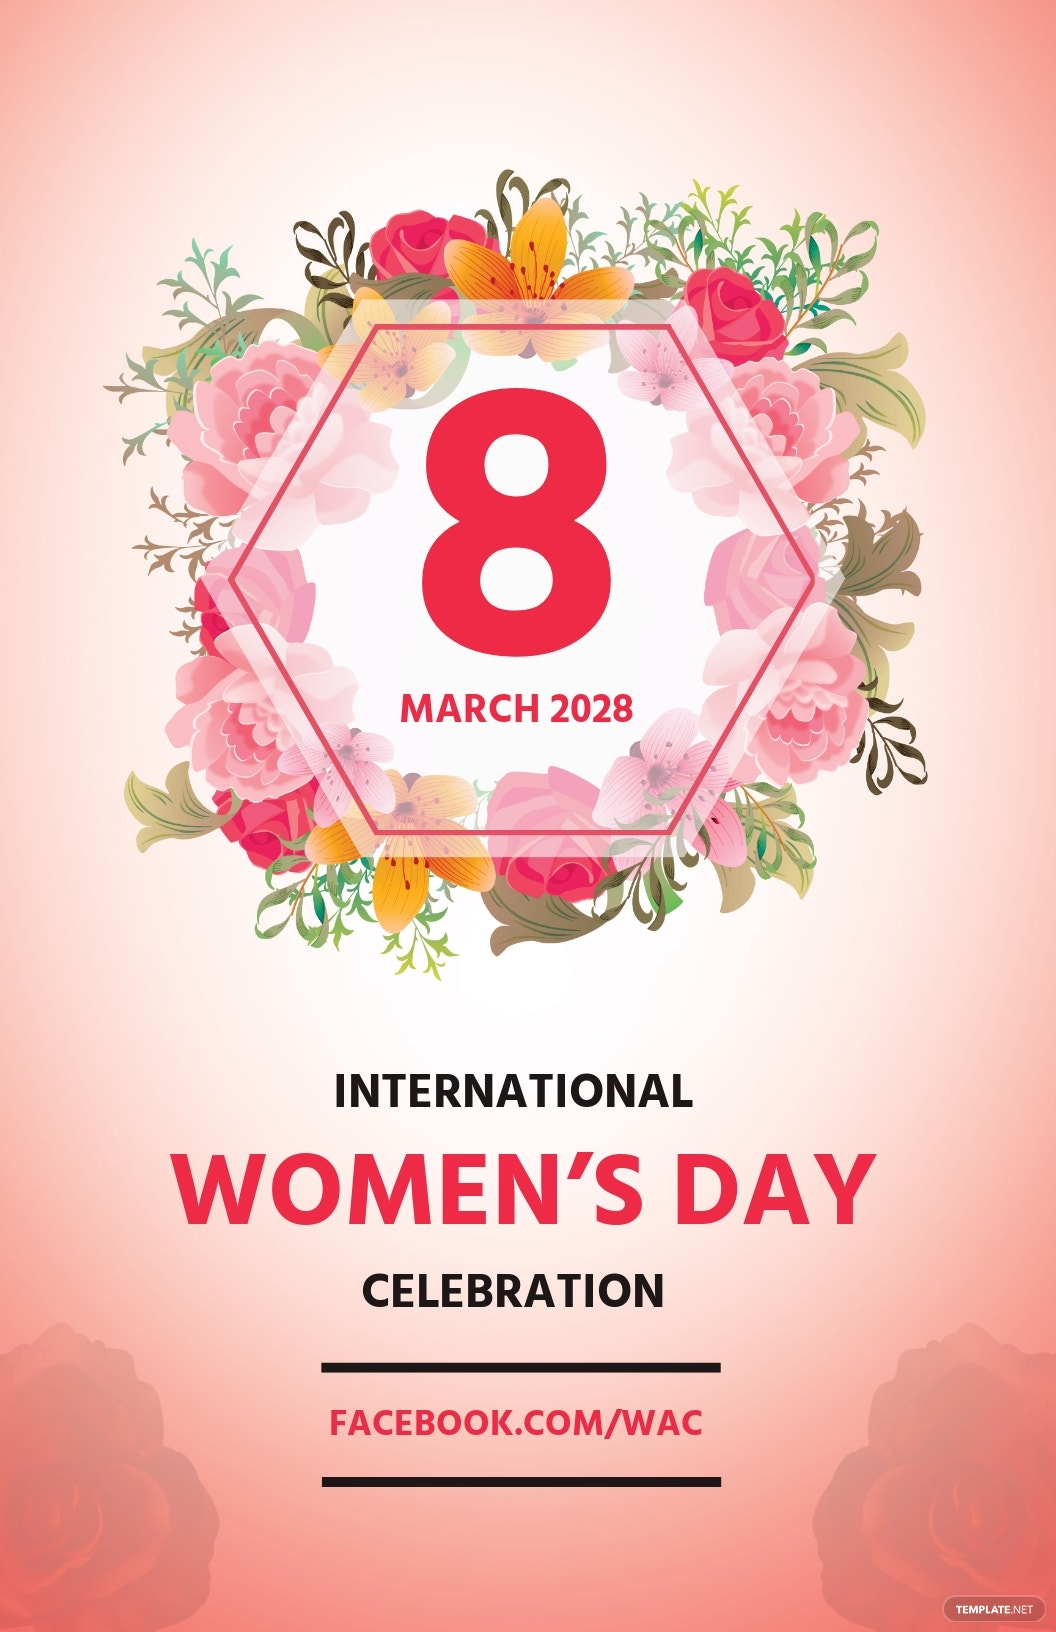 Women's Day Celebration Poster Template